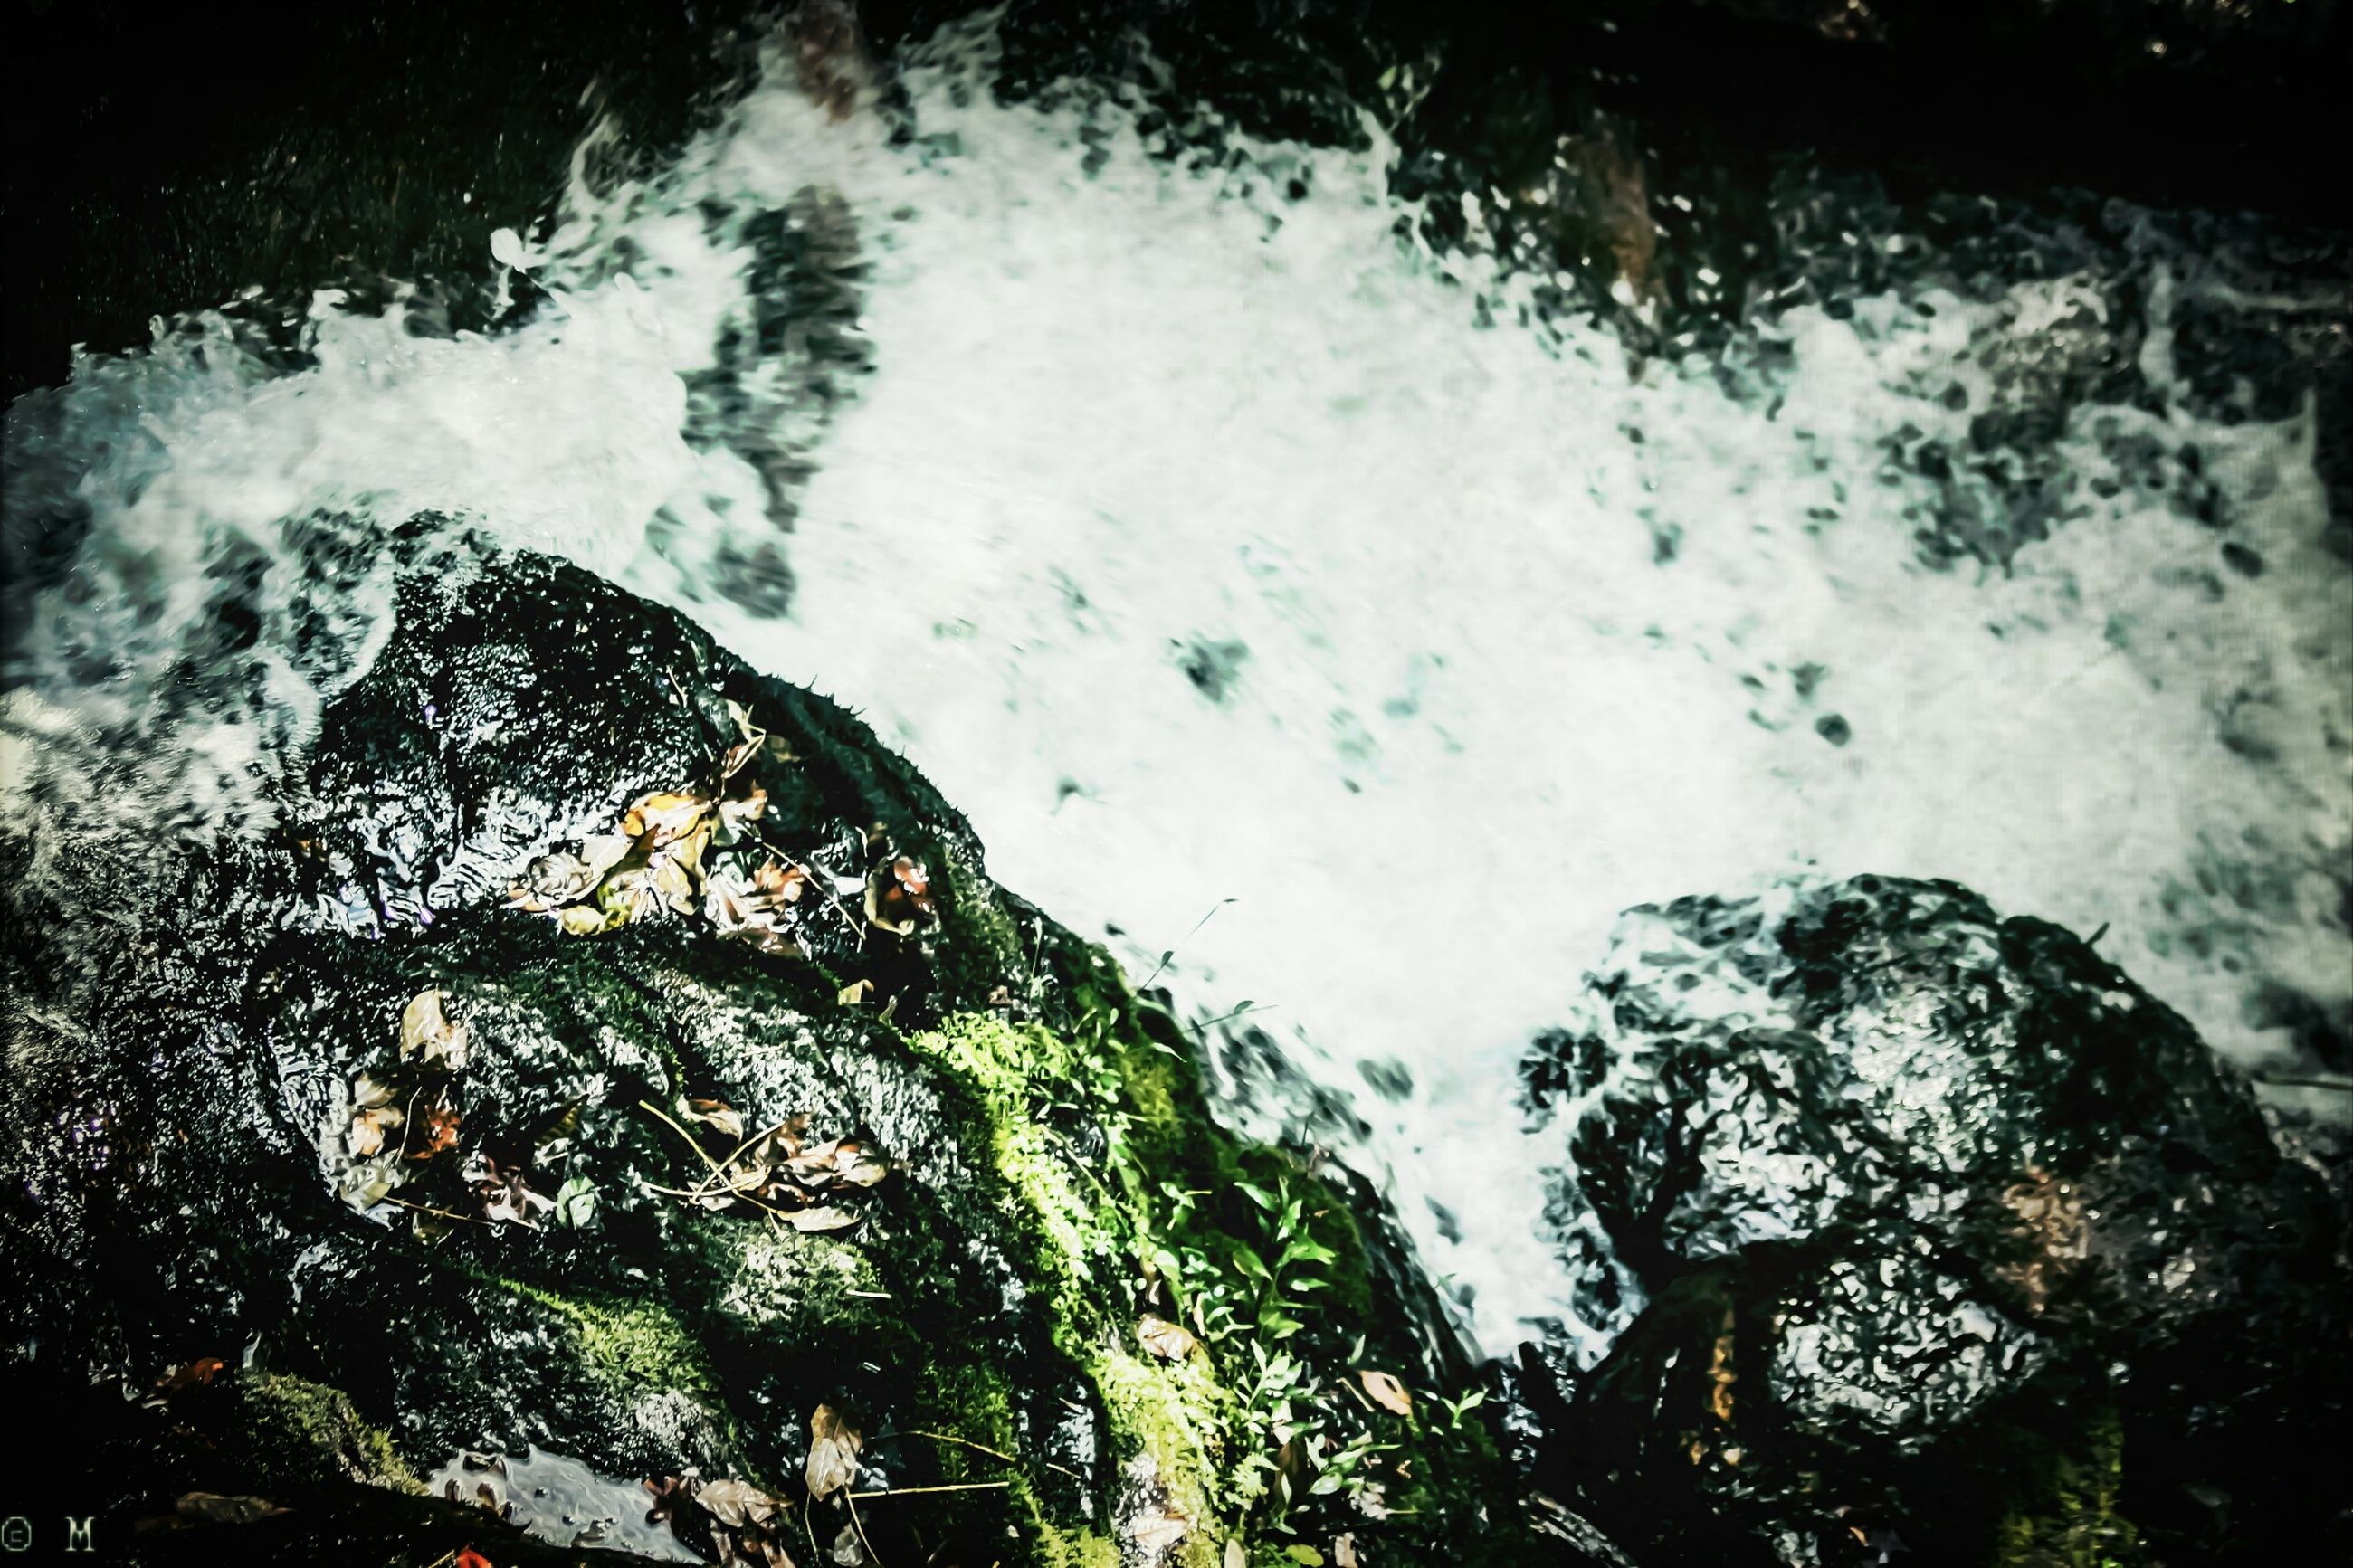 water, high angle view, nature, motion, rock - object, beauty in nature, reflection, day, outdoors, no people, flowing water, tranquility, wet, close-up, scenics, moss, river, stream, sunlight, lake